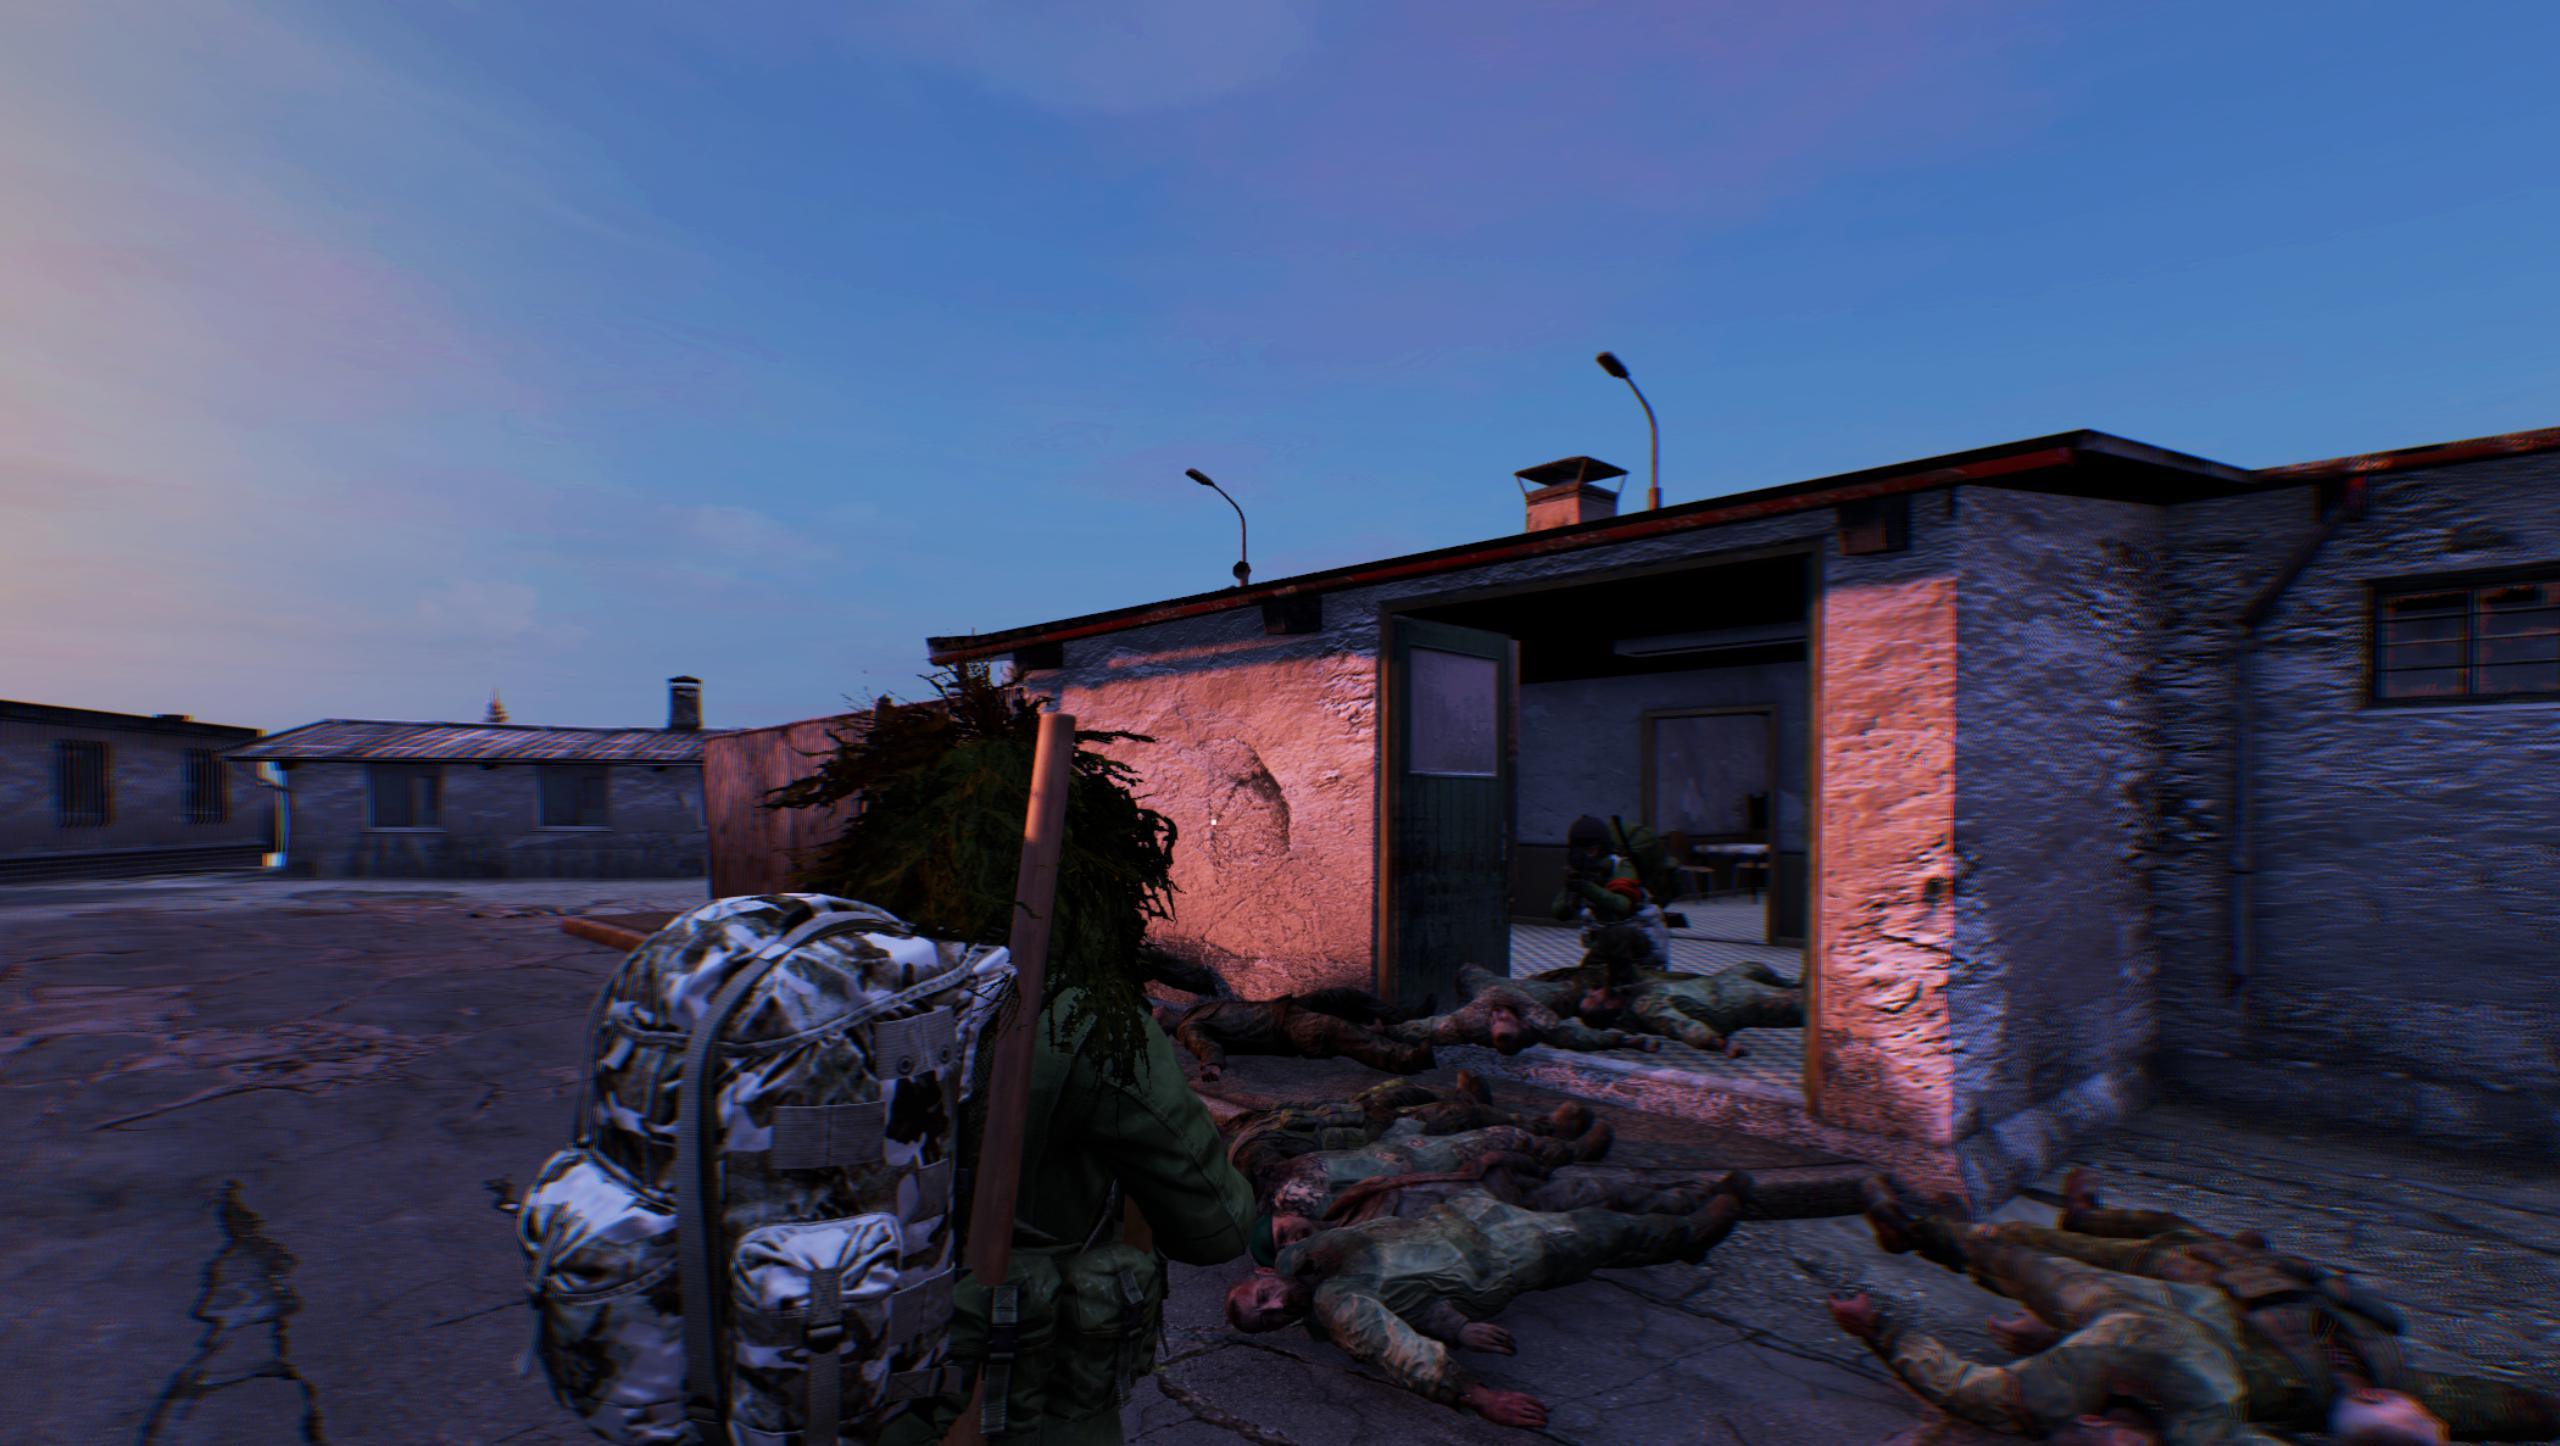 Rgm-clan-dayz-namalsk-survival-hardcore-15